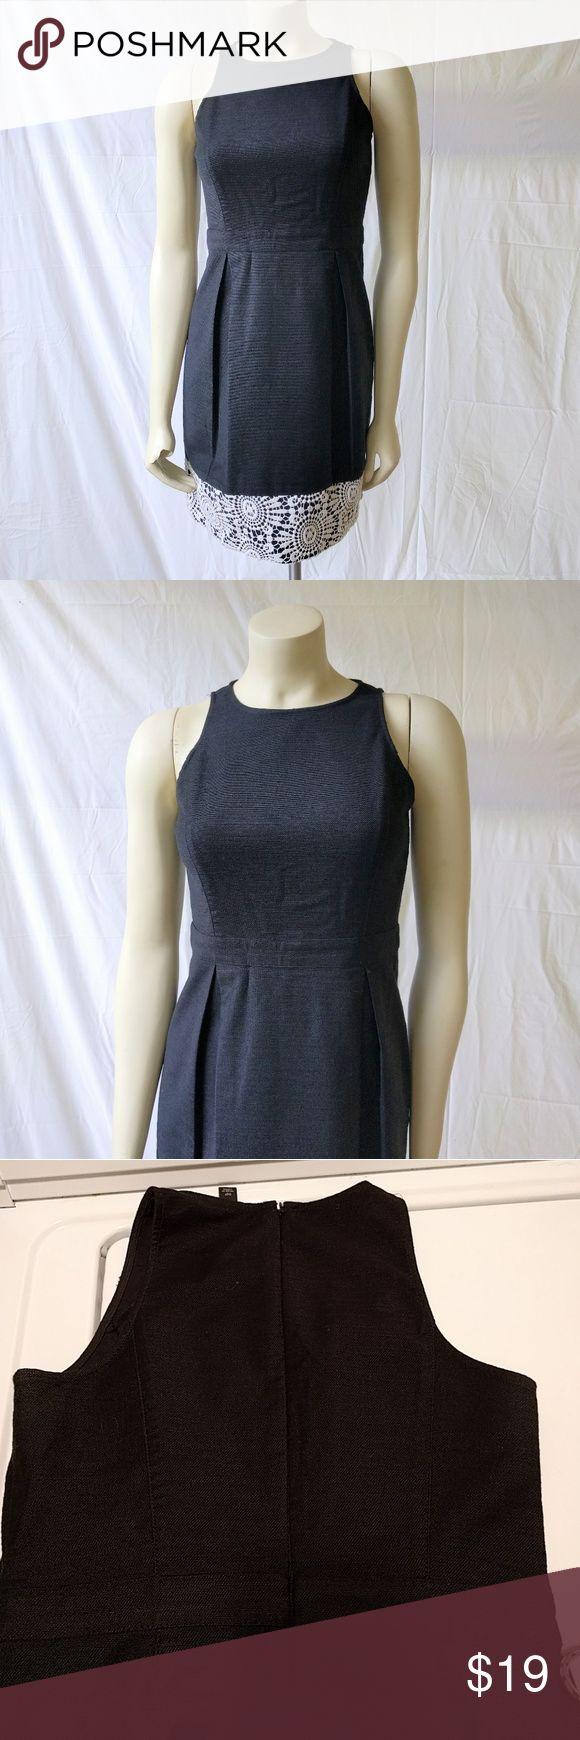 Ann Taylor Petite black dress with lace detail Ann Taylor Petite Black dress with lace details on bottom part. Dress is cotton but looks like linen. Not that wrinkly though. It's not lined. Material is semi stretchy. Body 98% cotton 2% spandex Lace: 100% cotton.  Dry clean. Gently used. No stains or holes.   Measurements laying flat: approx. Armpit to Armpit: 17in. Waist: 13.5in Hips: 19in Shoulder to hem: 33in.  Thanks for stopping by. Ann Taylor Dresses Midi